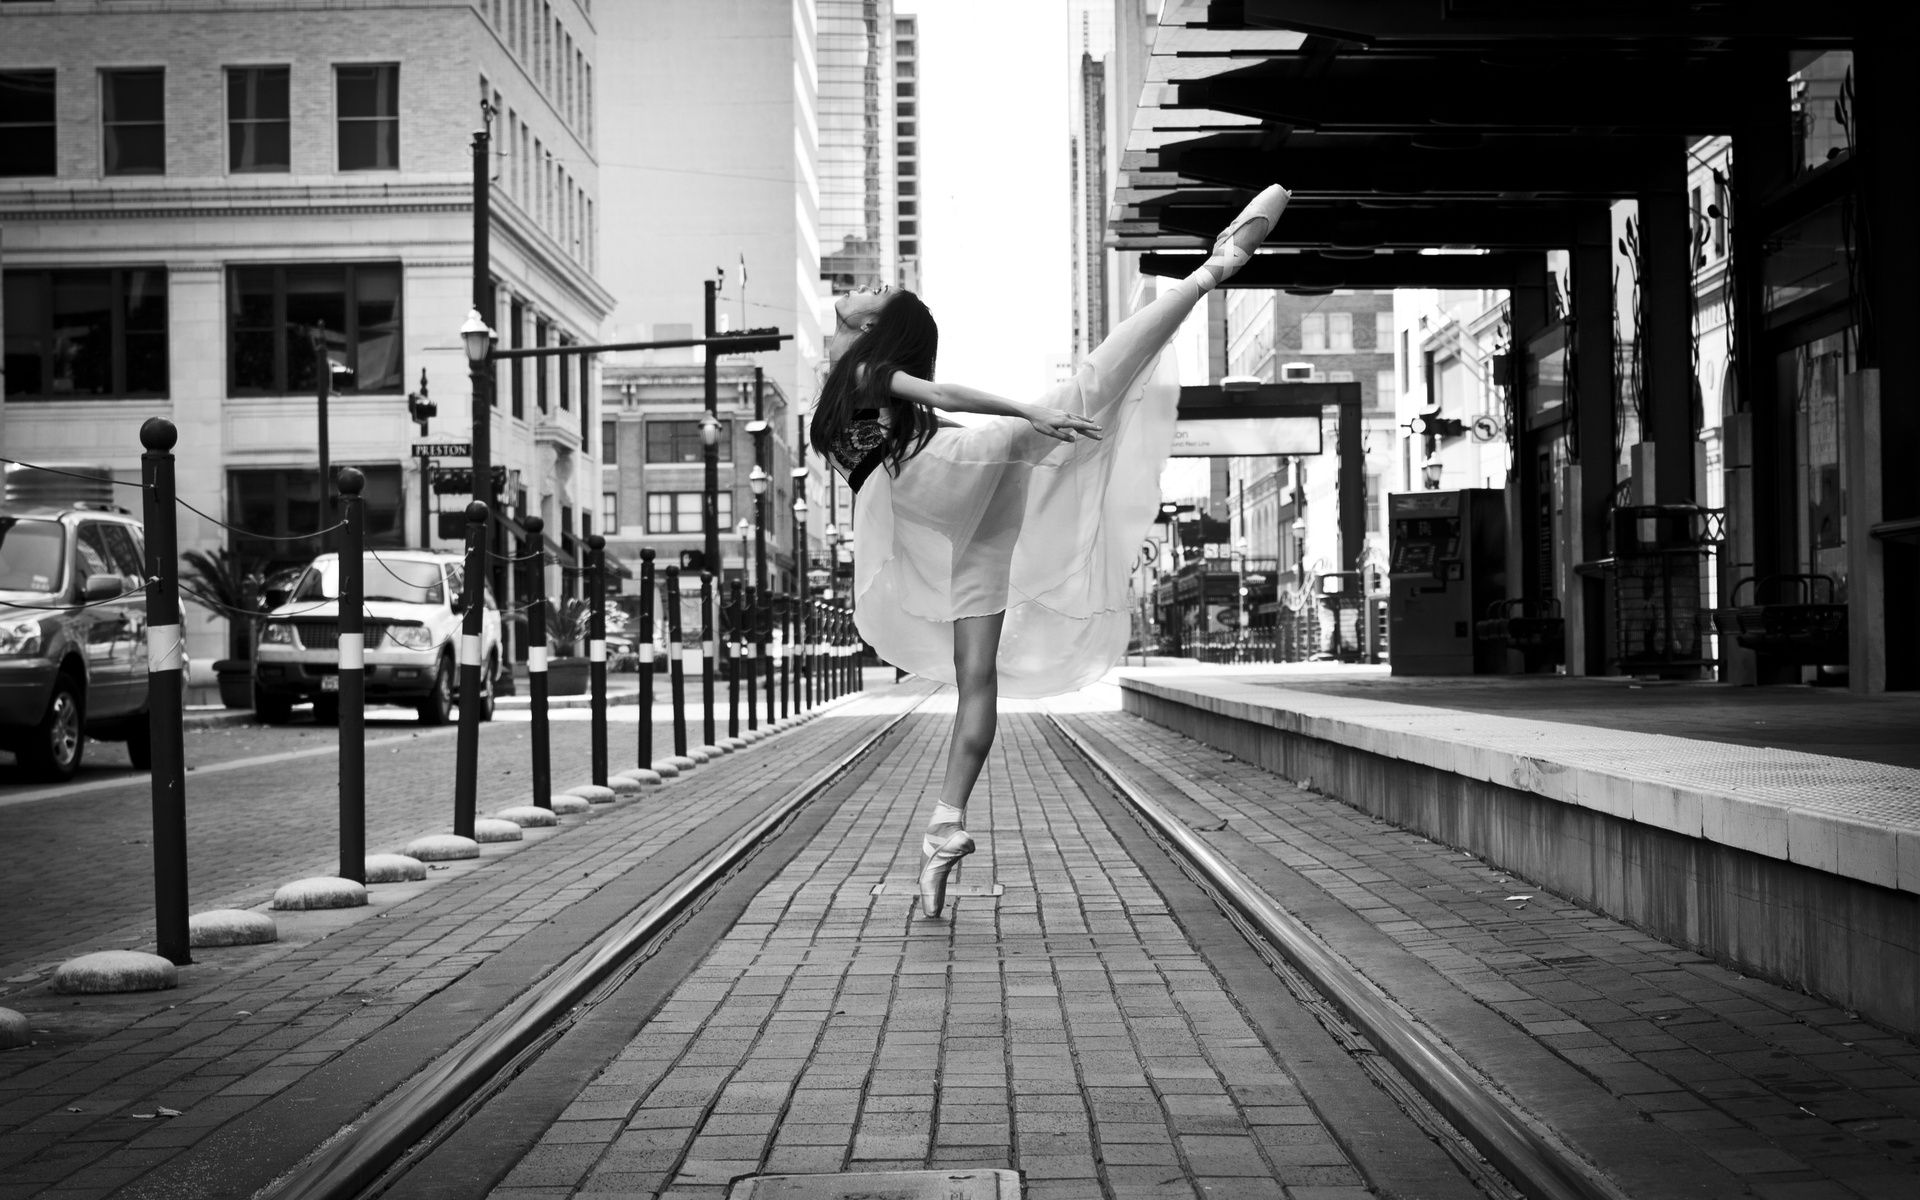 City Ballerina Wallpaper 1920 1200 High Definition Wallpaper Street Dance Photography Dancer Photography Ballerina Wallpaper